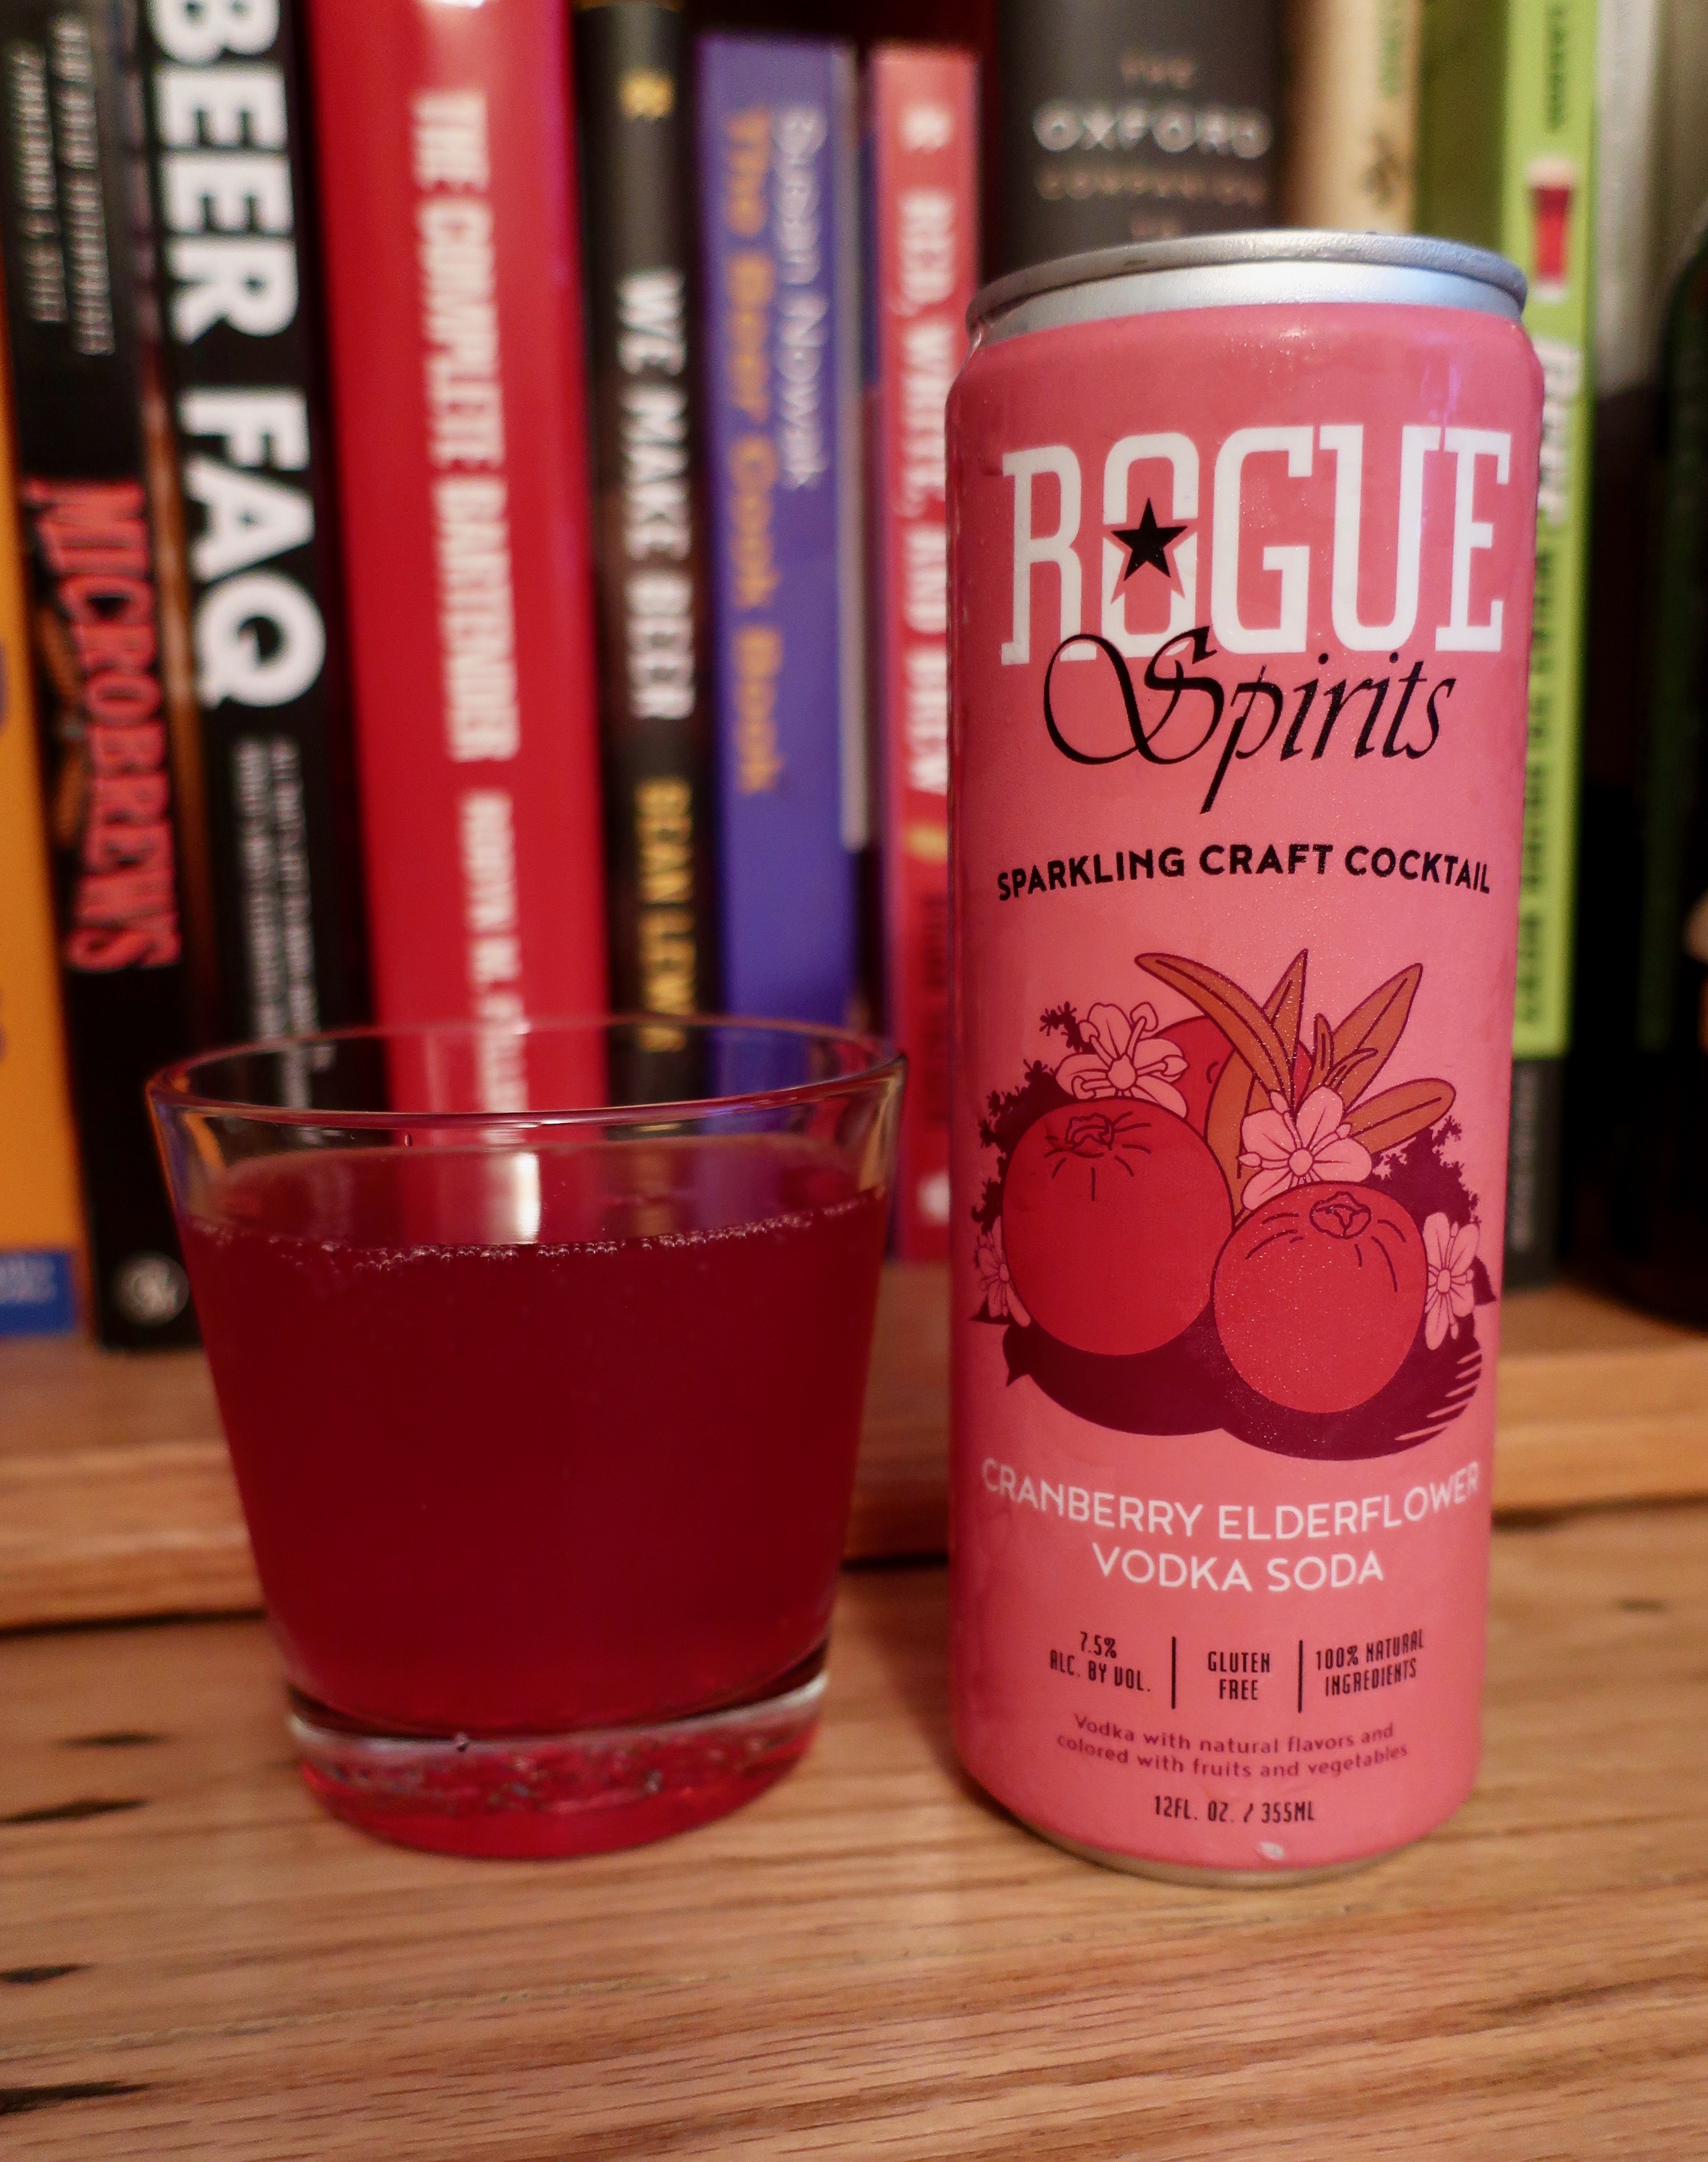 Cranberry Elderflower Vodka Soda, part of the new series of Rogue Canned Cocktails